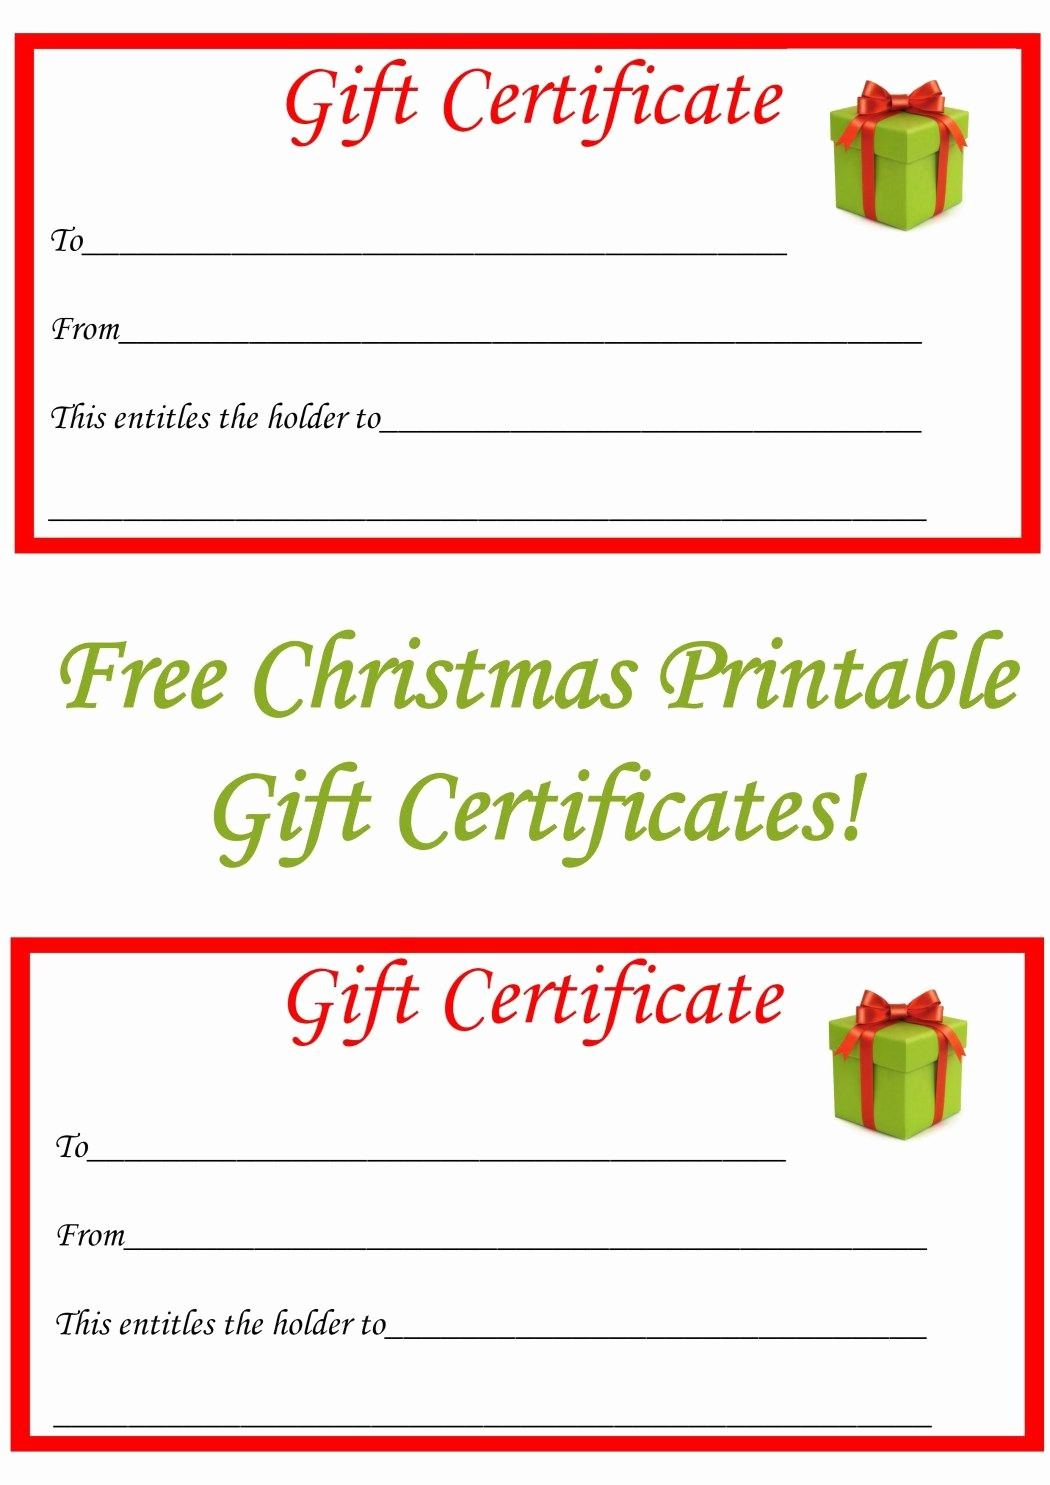 Free Holiday Gift Certificate Template Fresh Best 25 Printable T Certificates Ideas On Pinterest